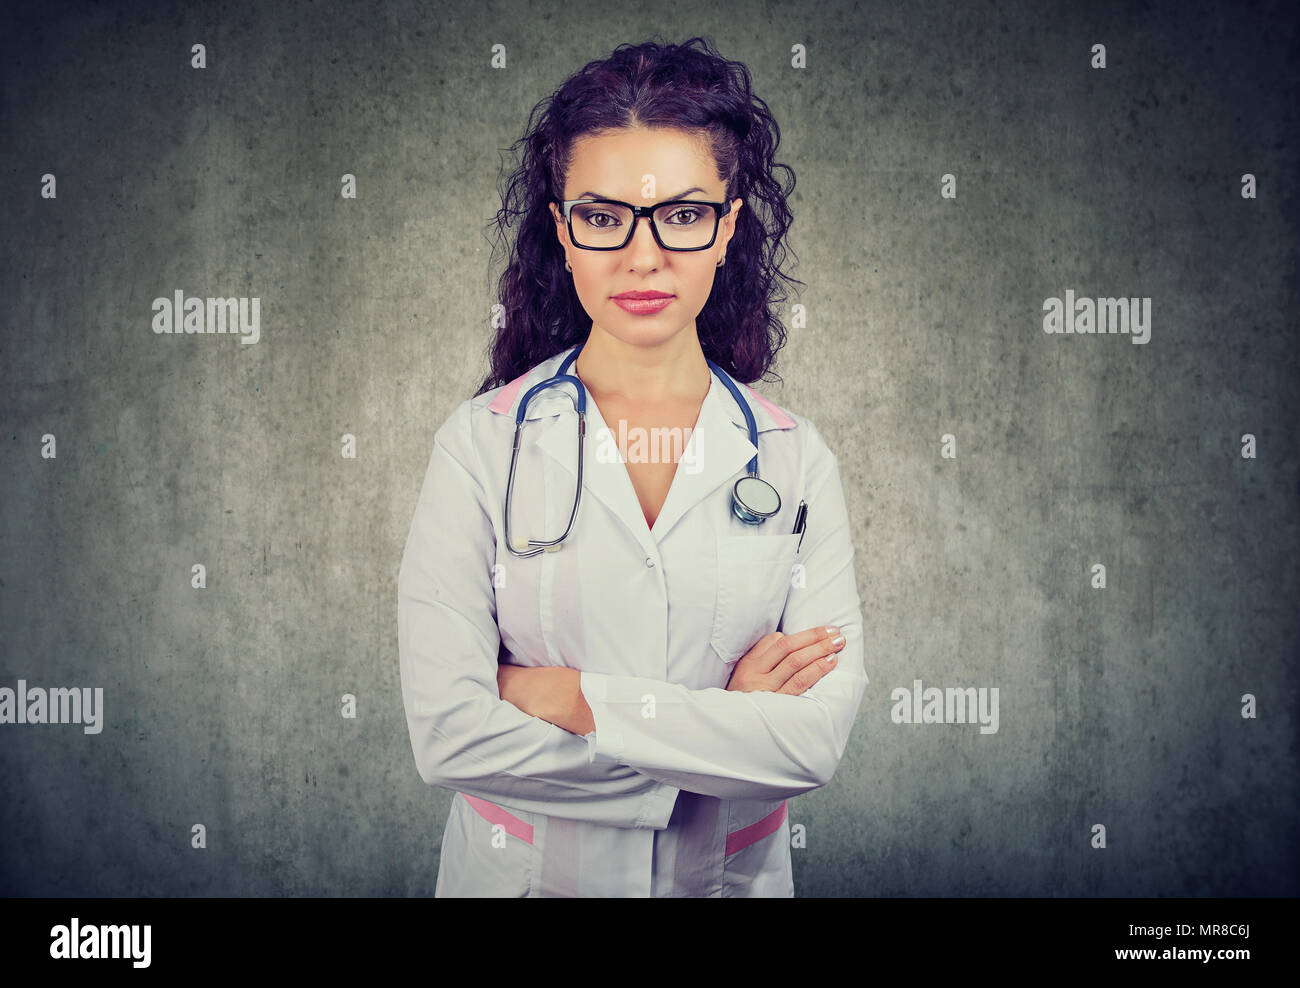 Beautiful woman in glasses wearing white apparel of doctor and stethoscope looking confidently at camera. - Stock Image